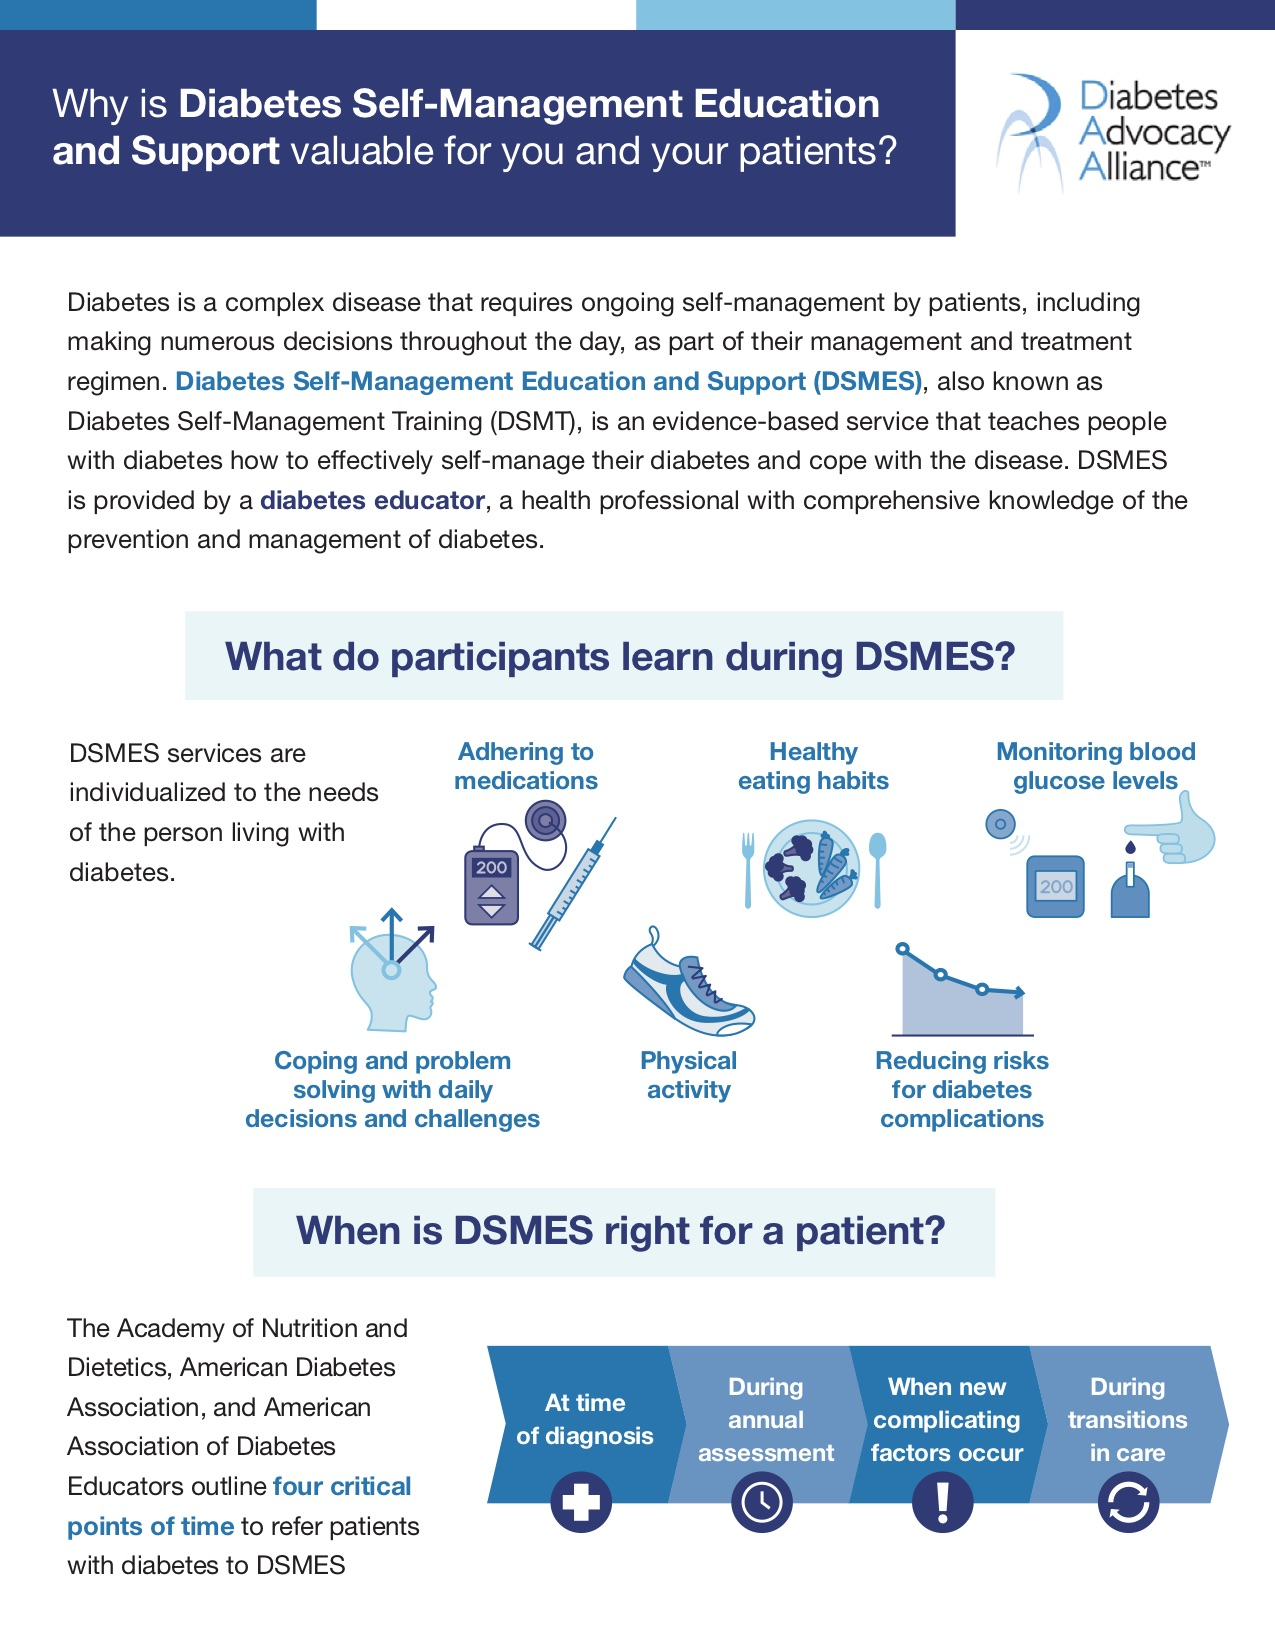 Diabetes Self-Management Education and Support Page 1